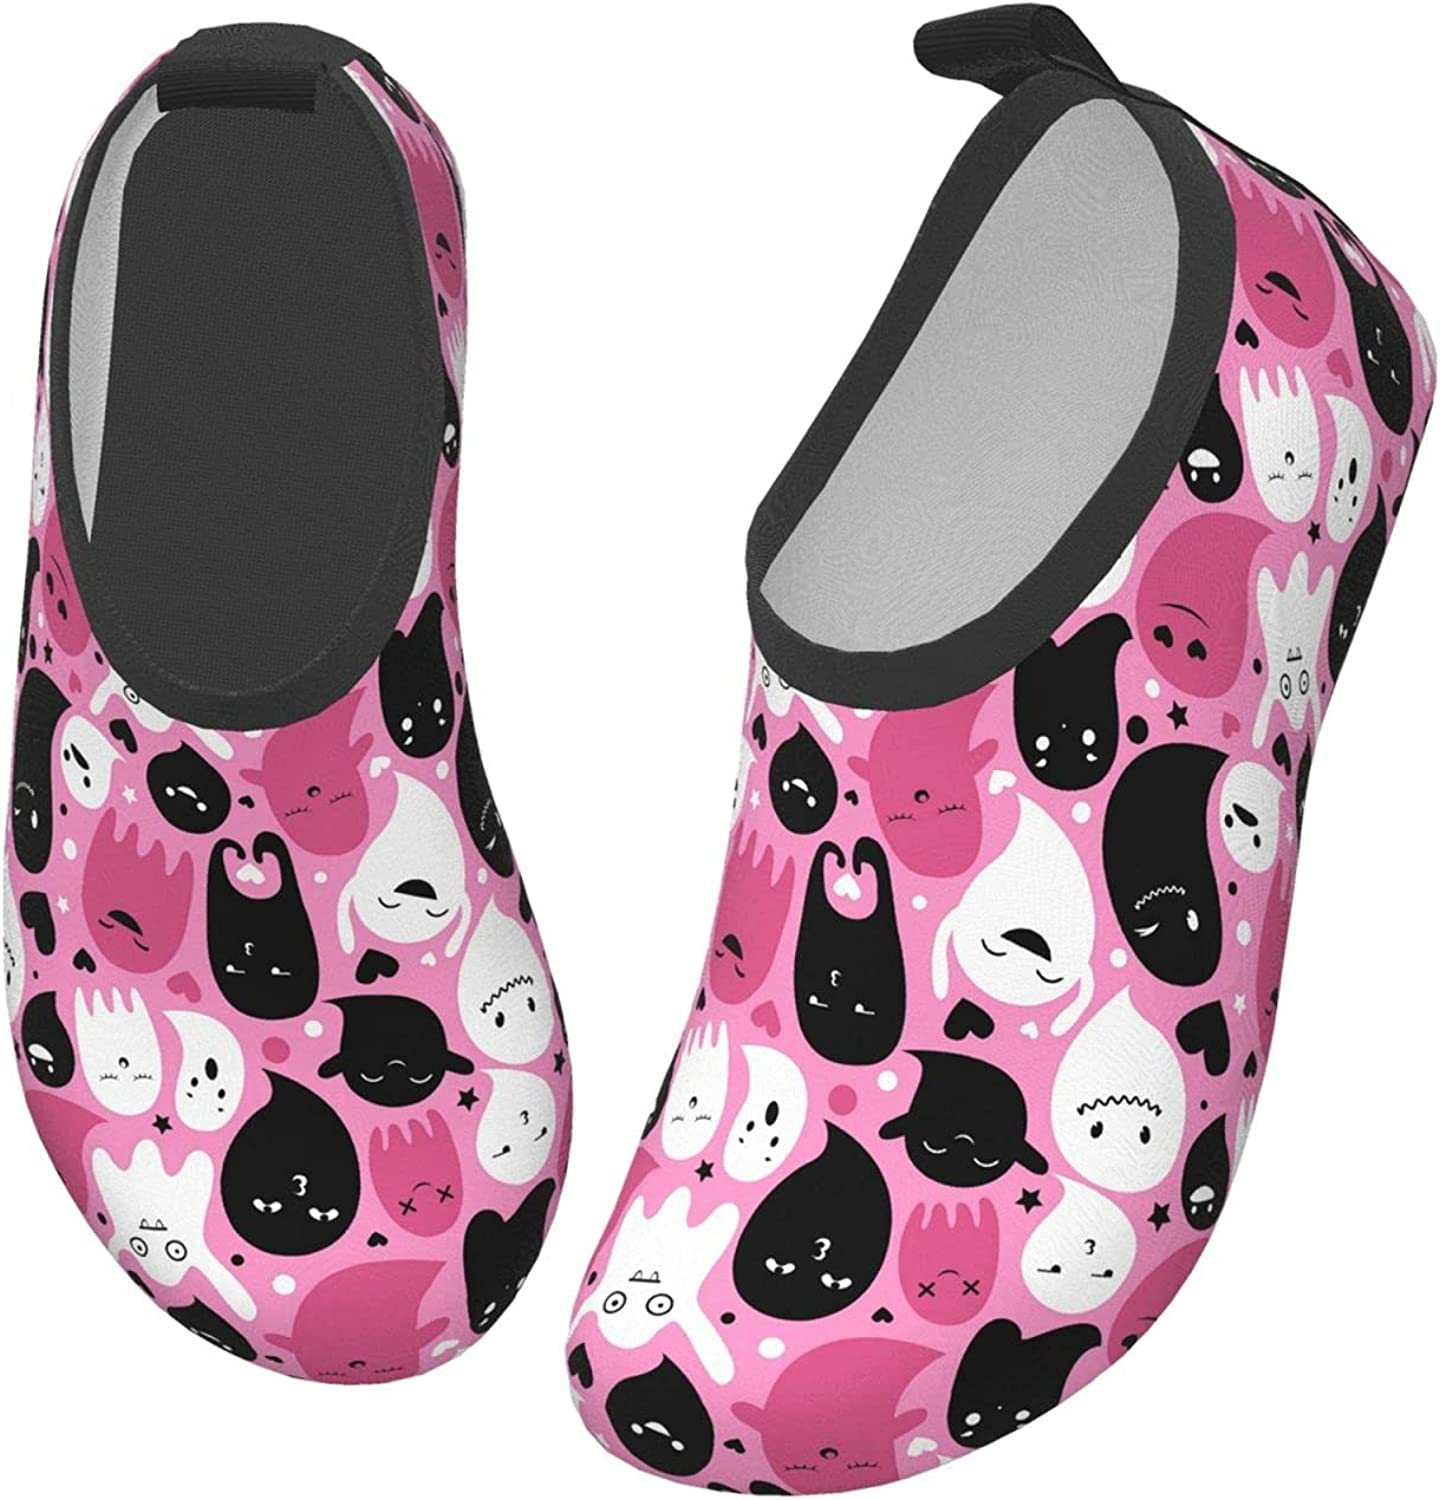 Jedenkuku Pink Ghost Halloween Horror Cute Children's Water Shoes Feel Barefoot for Swimming Beach Boating Surfing Yoga